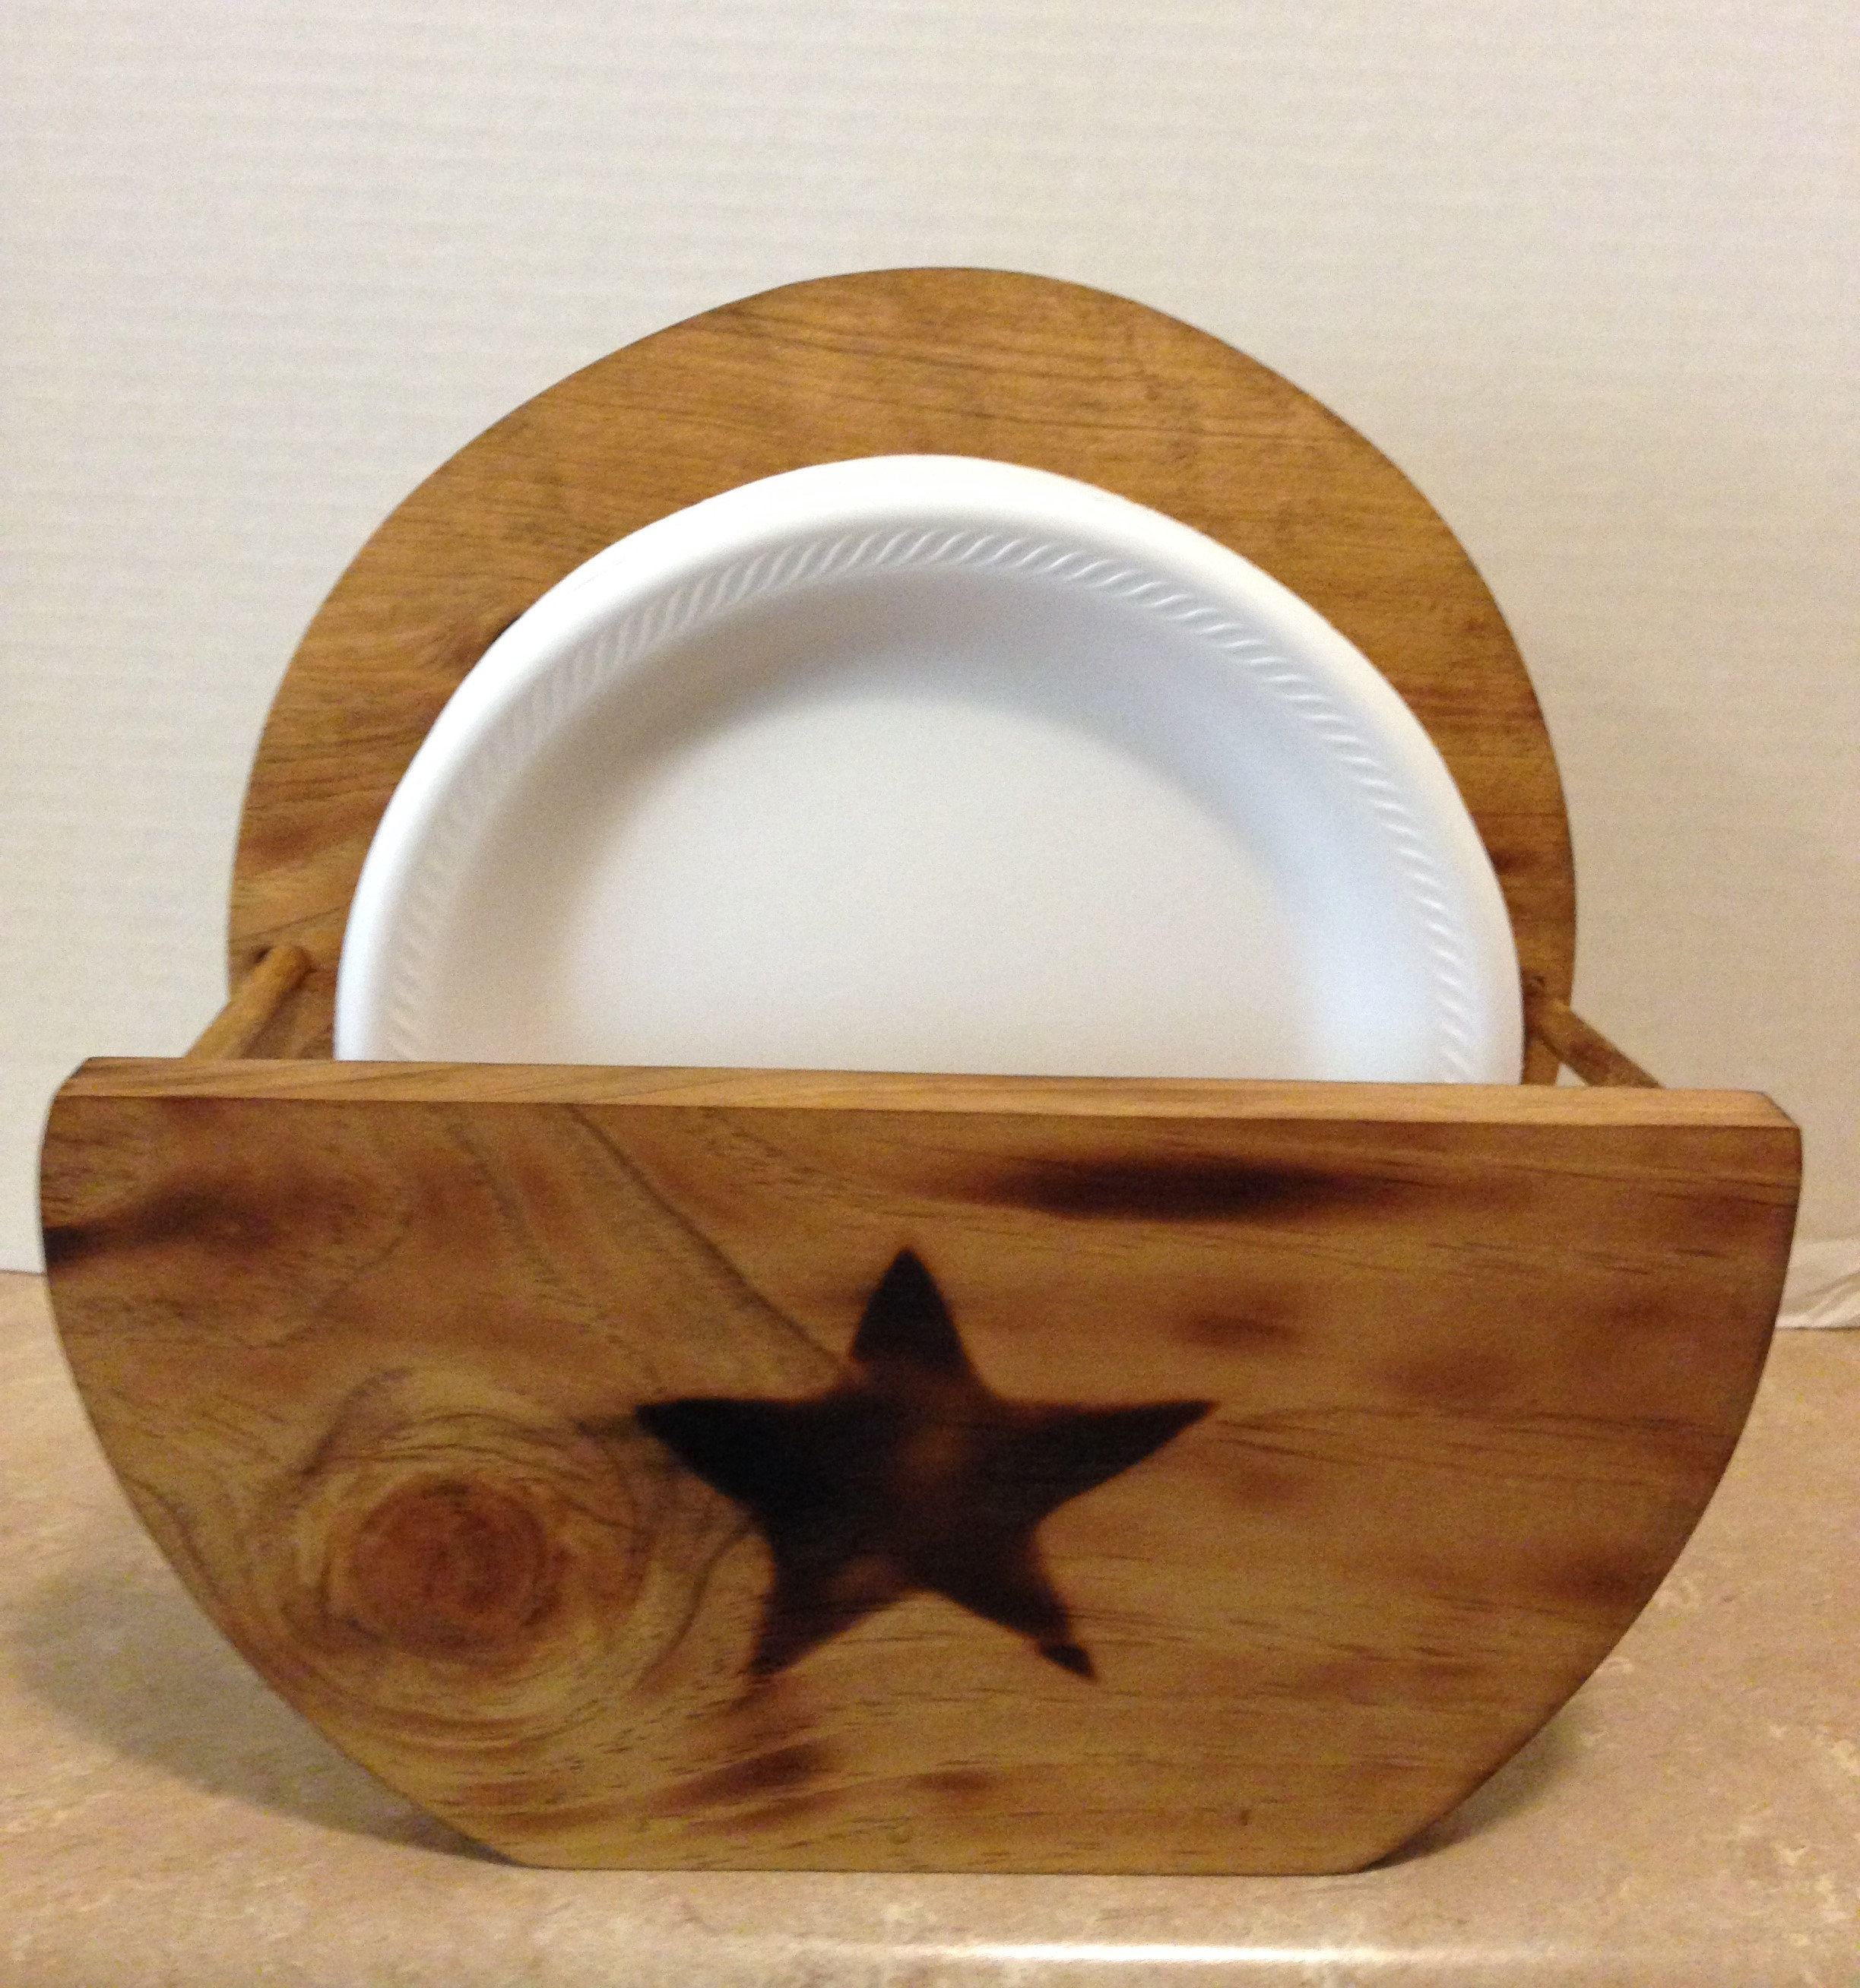 Paper Plate Holder, Wooden Plate Holder, Holder for plates ...